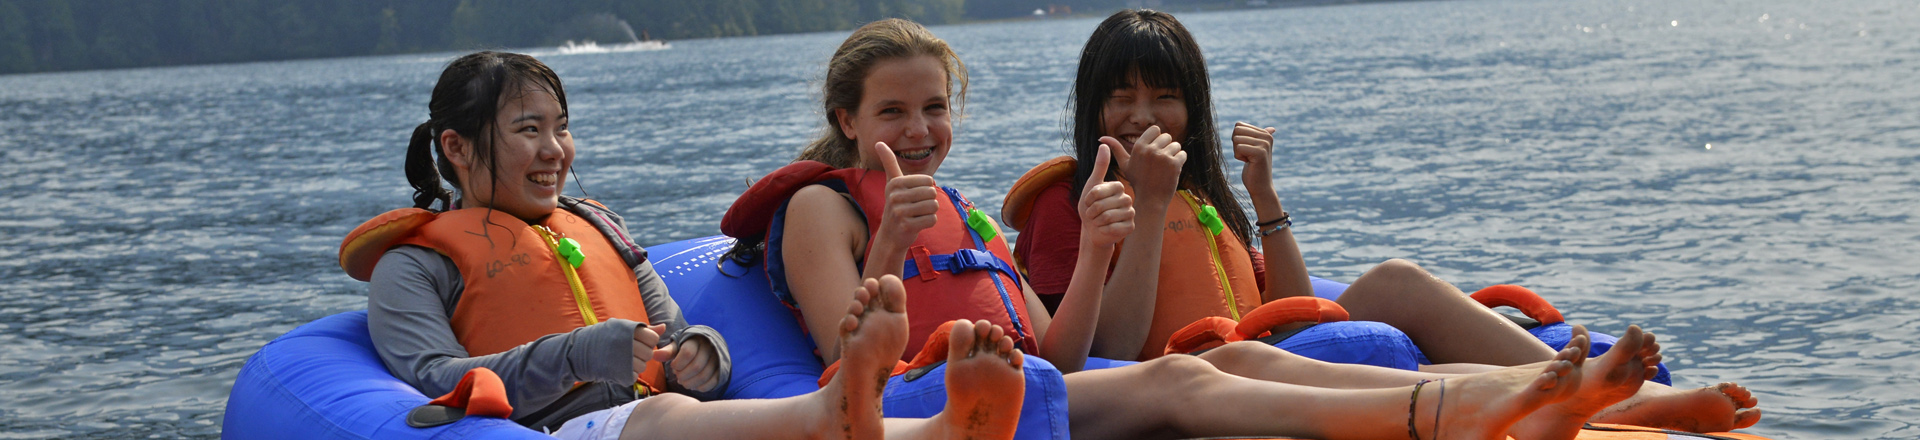 Kawkawa Camp and Retreat, Hope BC - Senior Teens